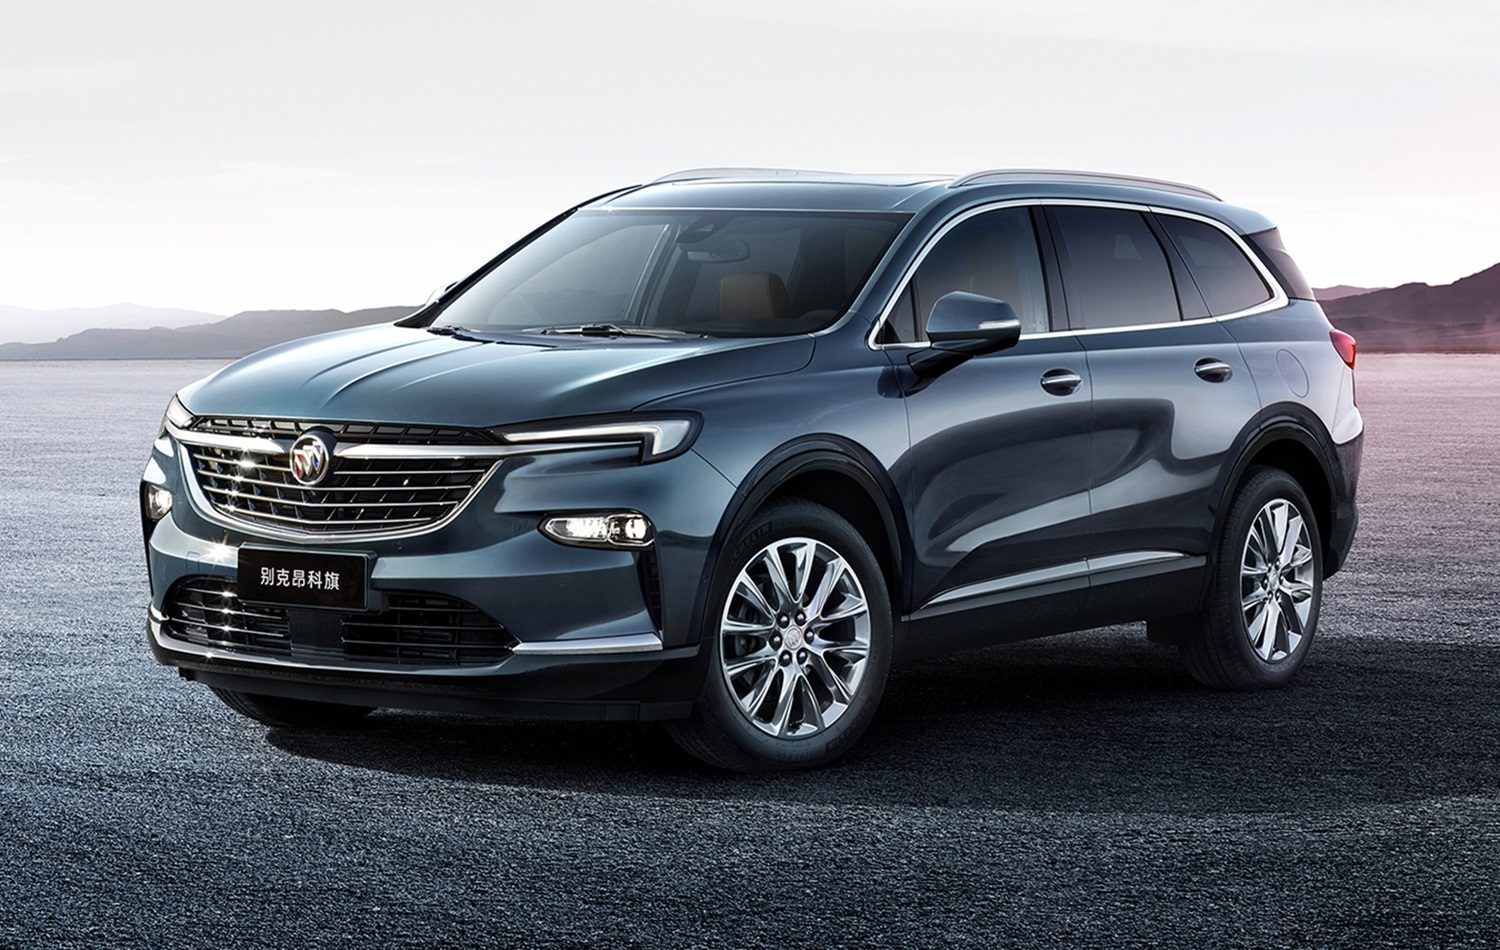 This Is The All-New Buick Enclave Crossover For China | Gm Build Your Own New 2021 Buick Enclave